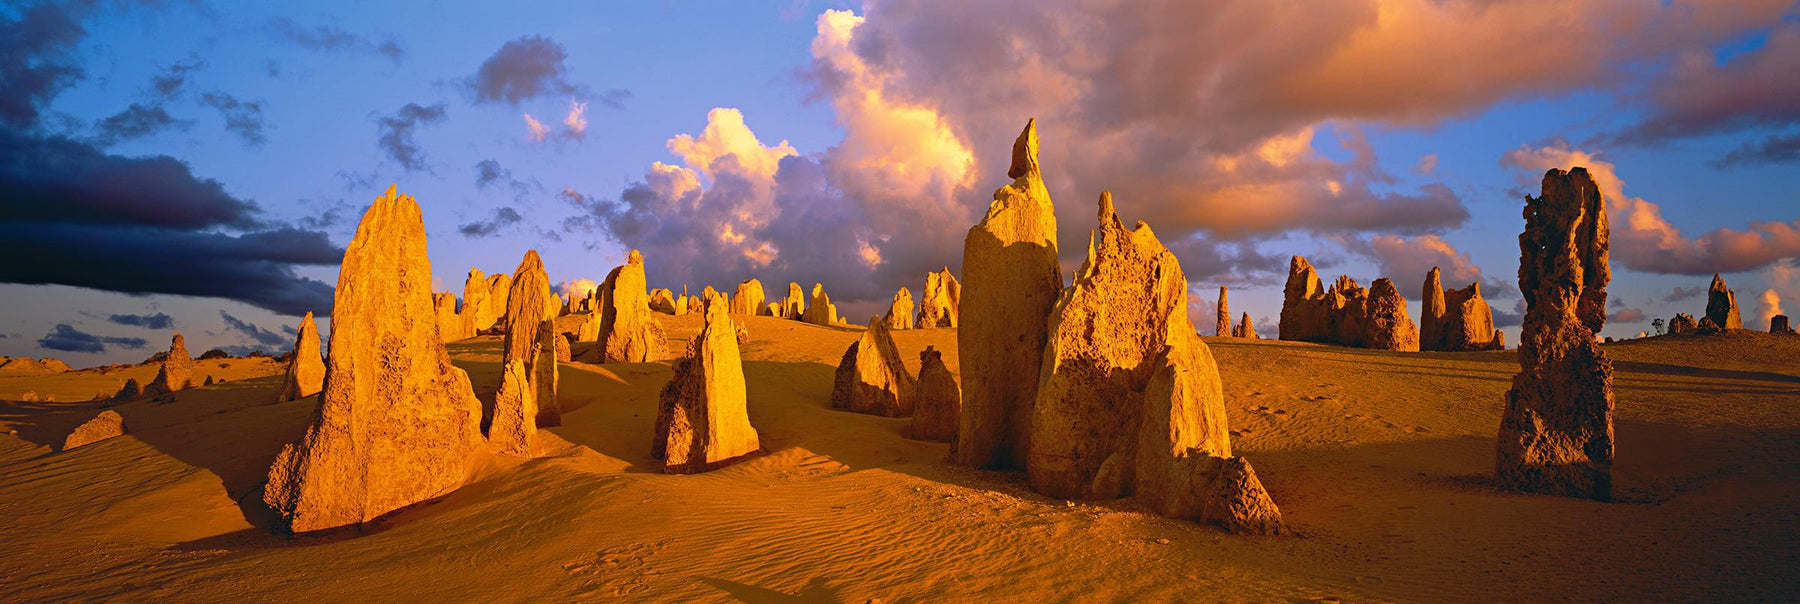 Termite mounds on sand dunes in the Pinnacles Desert Nambung National Park Australia